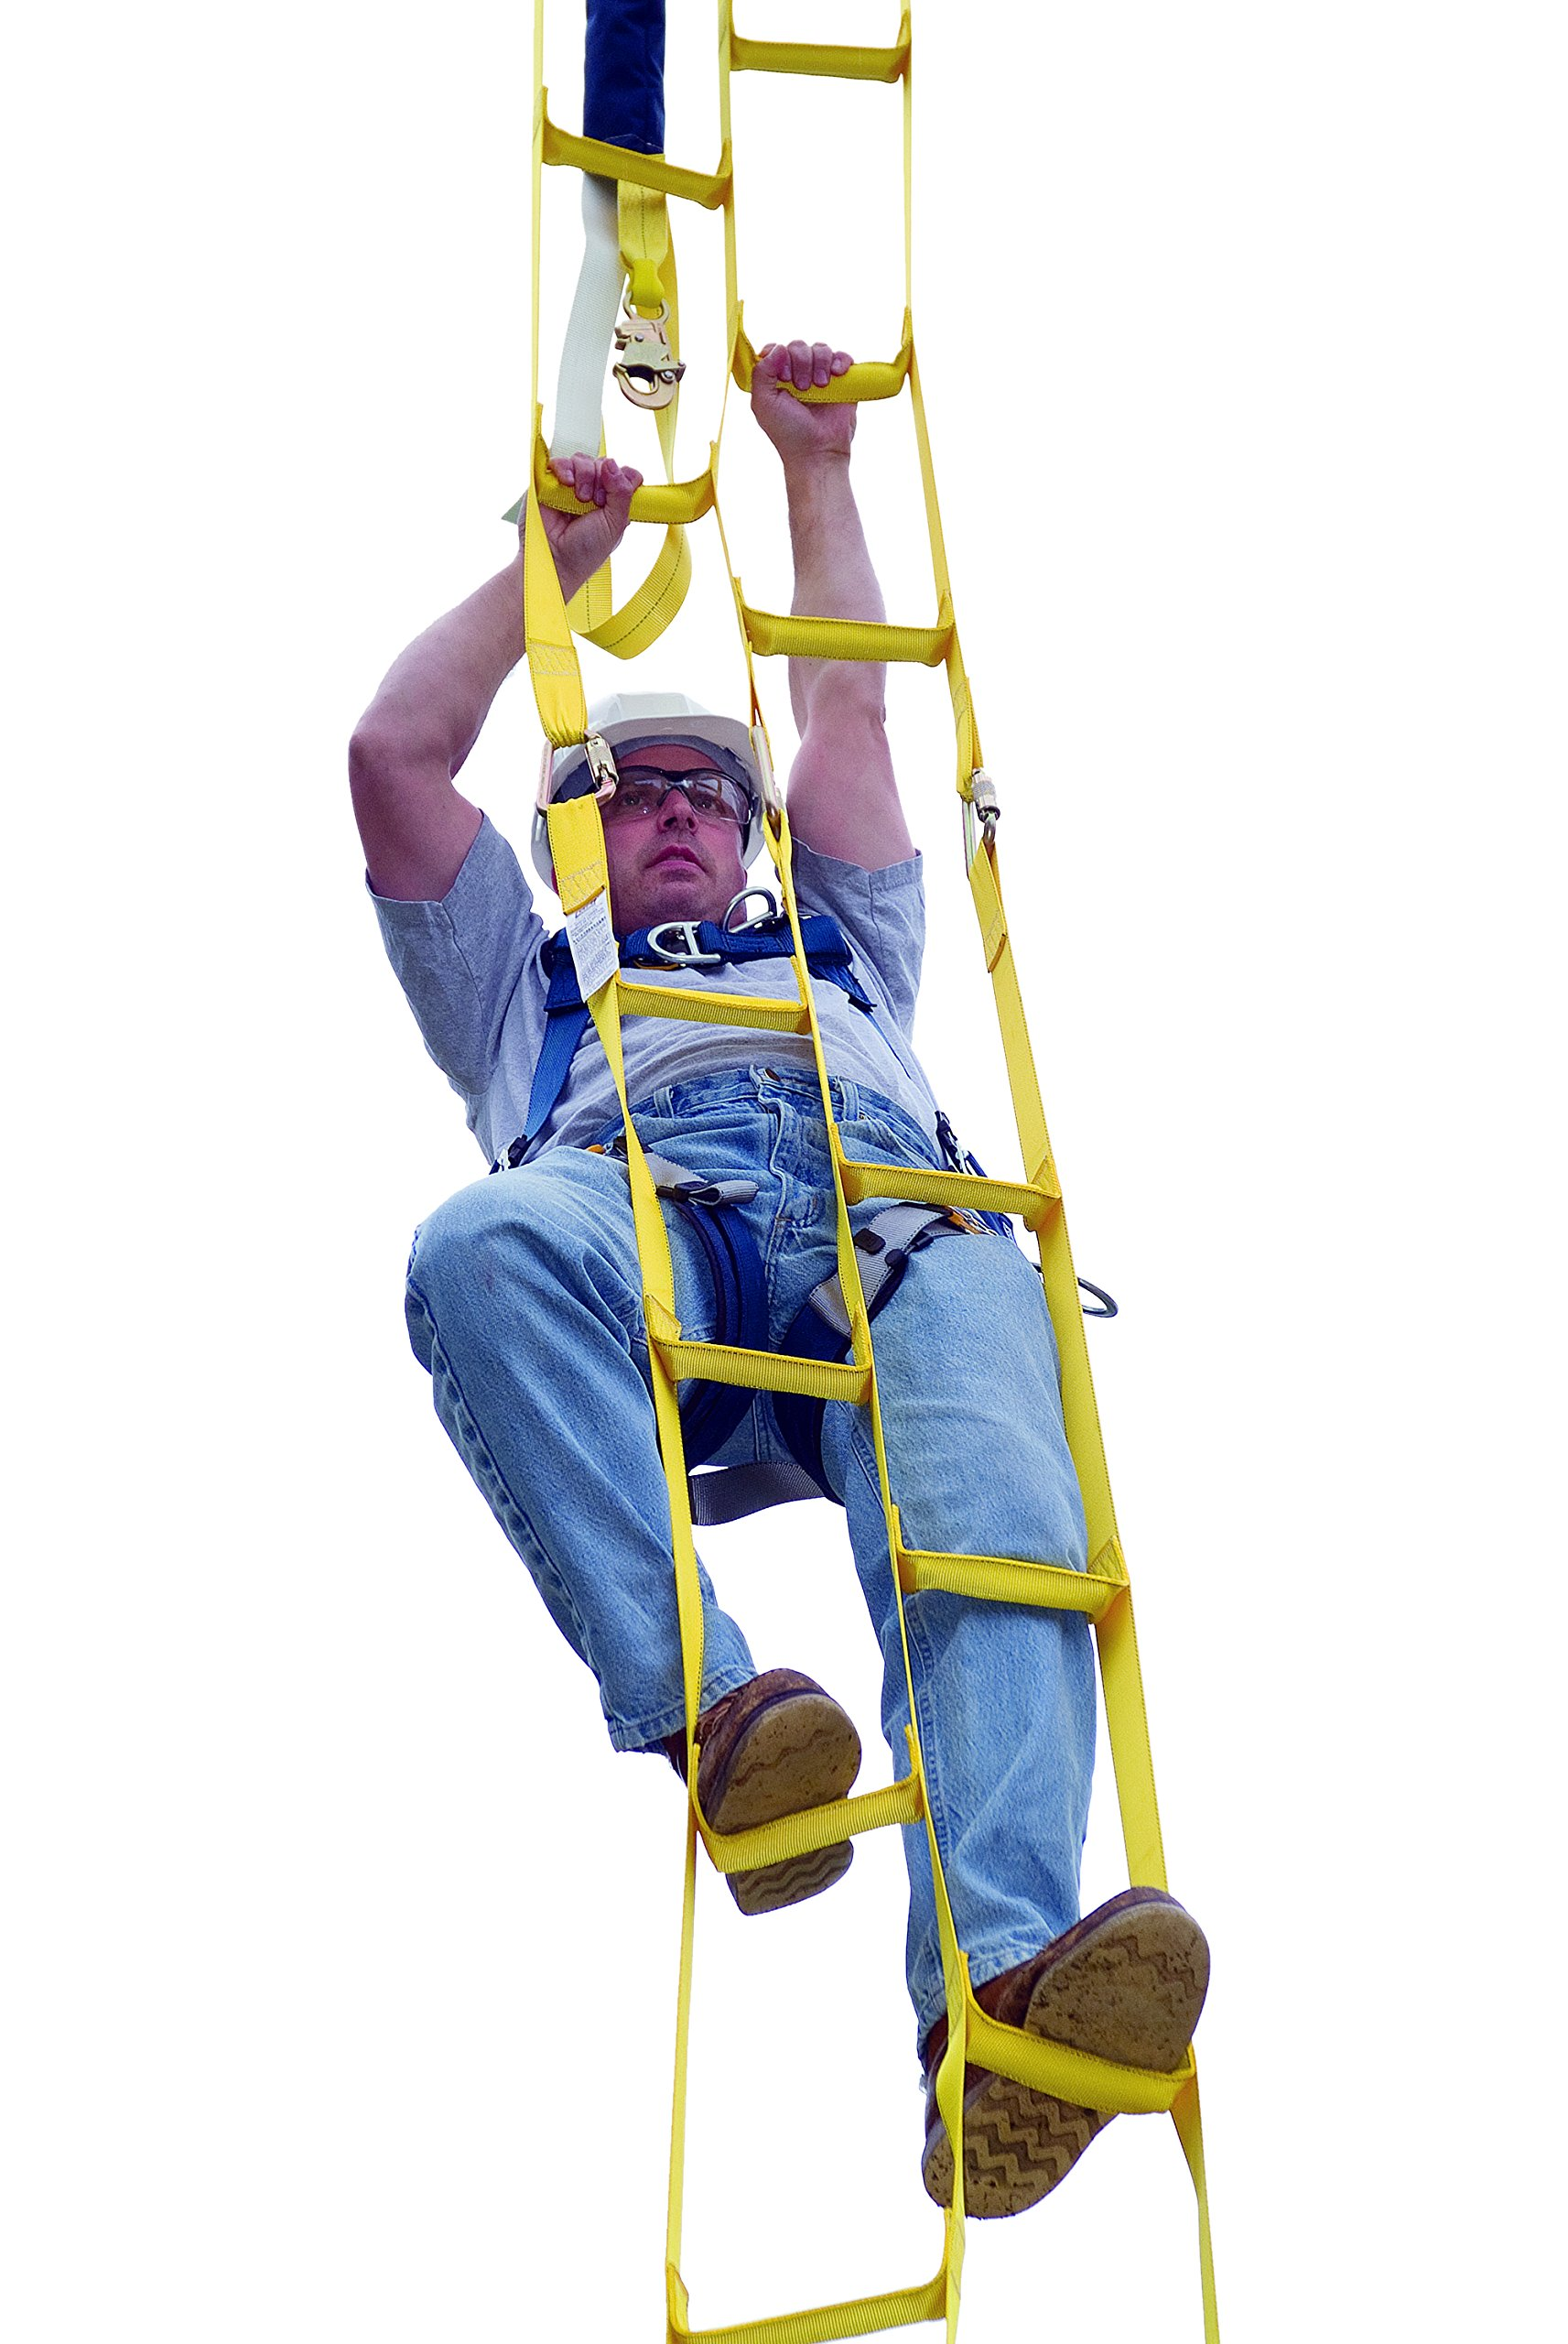 3M DBI-SALA 8516294 Rollgliss 8' Synthetic Web Rescue Ladder with Reinforced Rigid Staggered Steps, Yellow